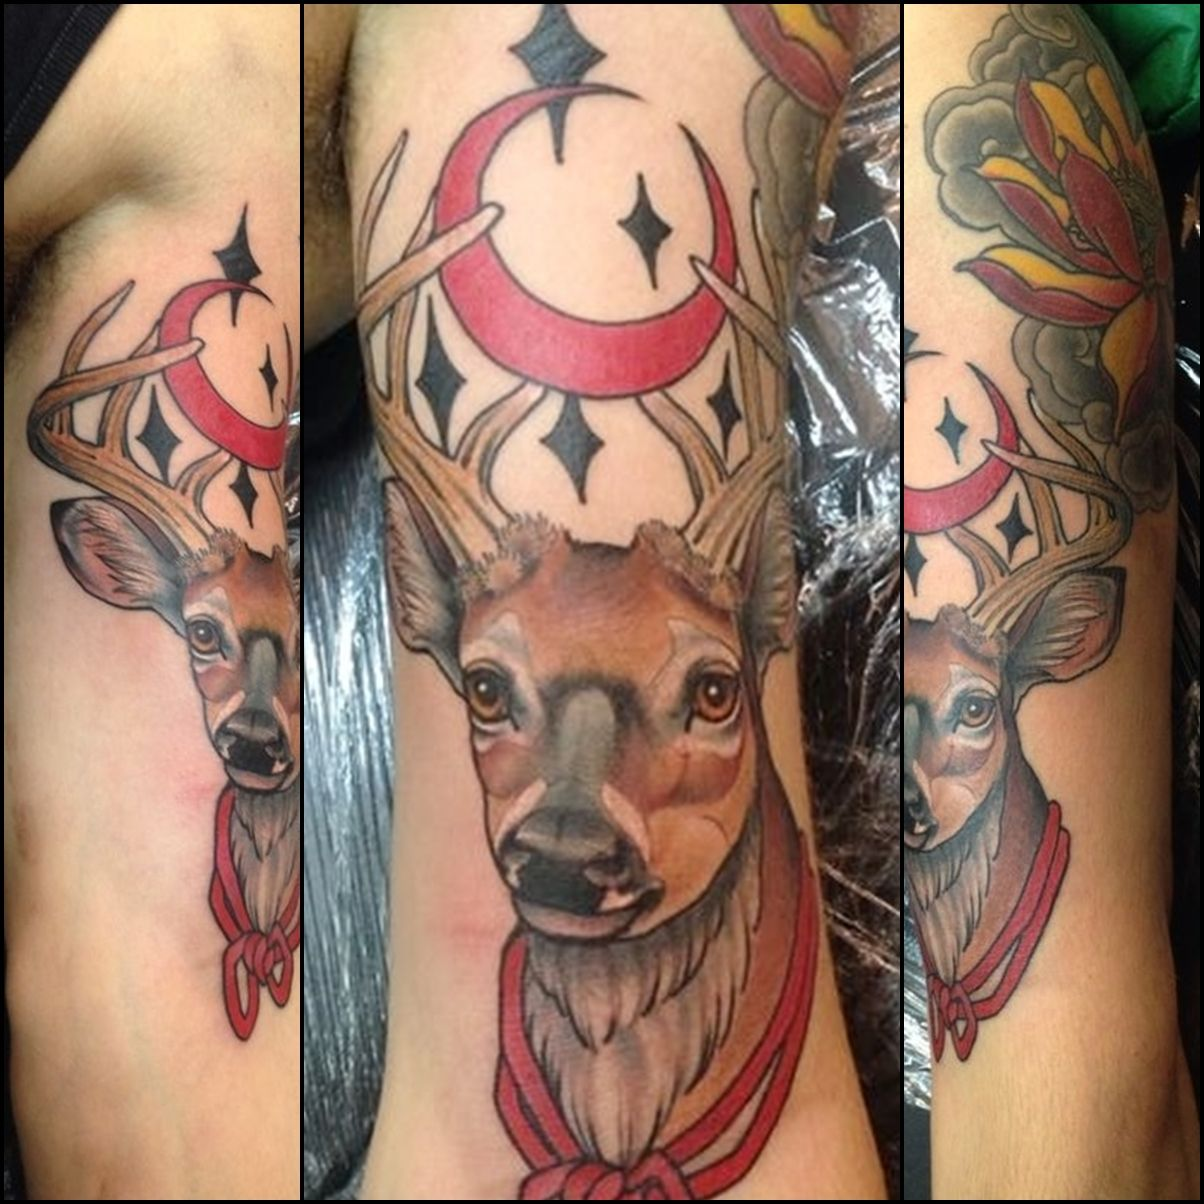 Deer tattoo done by Mauro Madrid Ramos - Good Times Tattoos, Buenos Aires, Argentina.